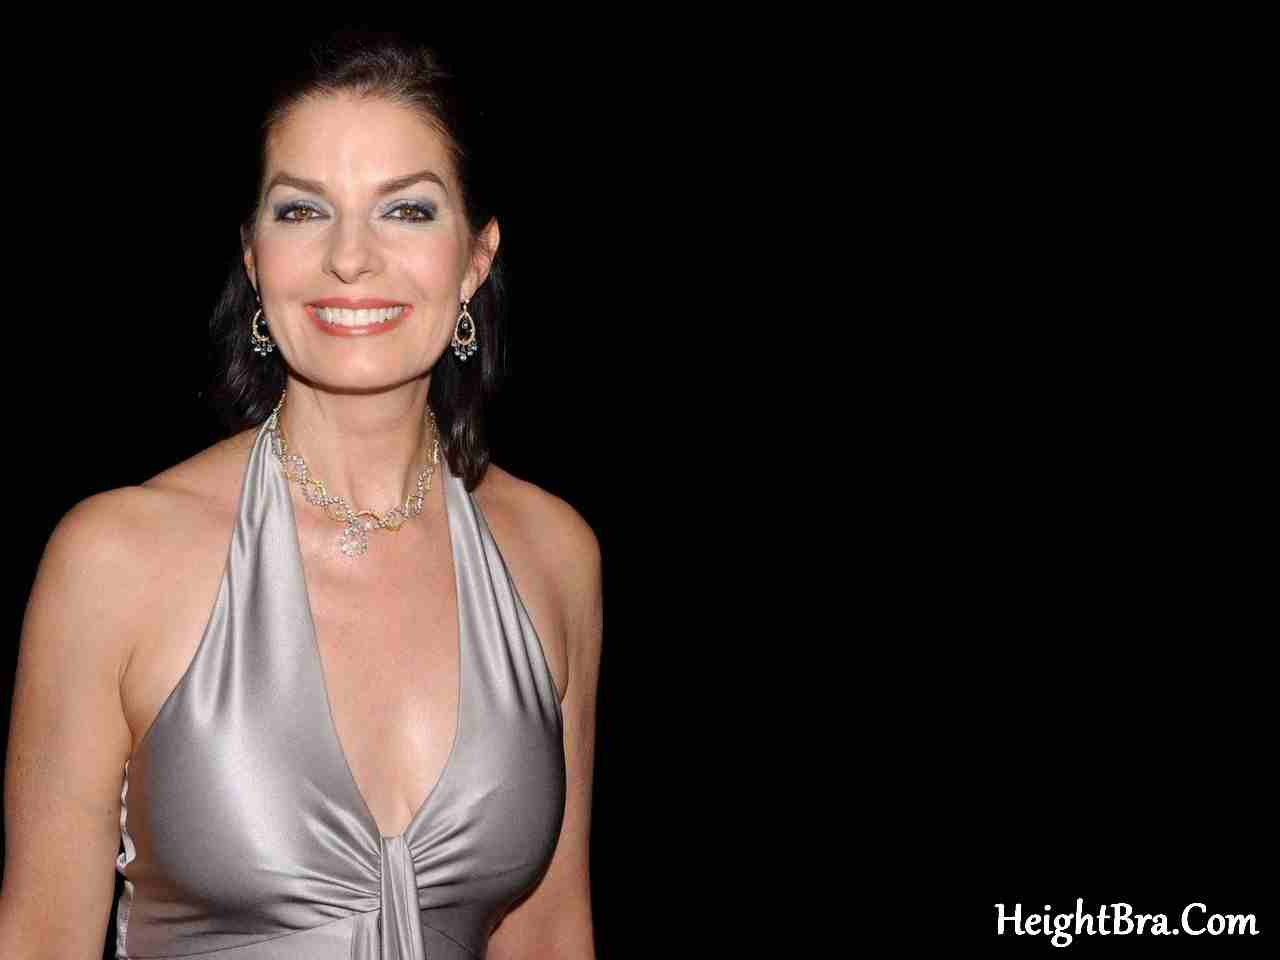 sela ward gone girlsela ward young, sela ward 2016, sela ward imdb, sela ward michael jackson, sela ward plastic surgery, sela ward, sela ward house, sela ward howard sherman, sela ward 2015, sela ward gone girl, sela ward movies, sela ward instagram, sela ward actress, sela ward 54, sela ward pictures, sela ward biografia, sela ward net worth, sela ward husband